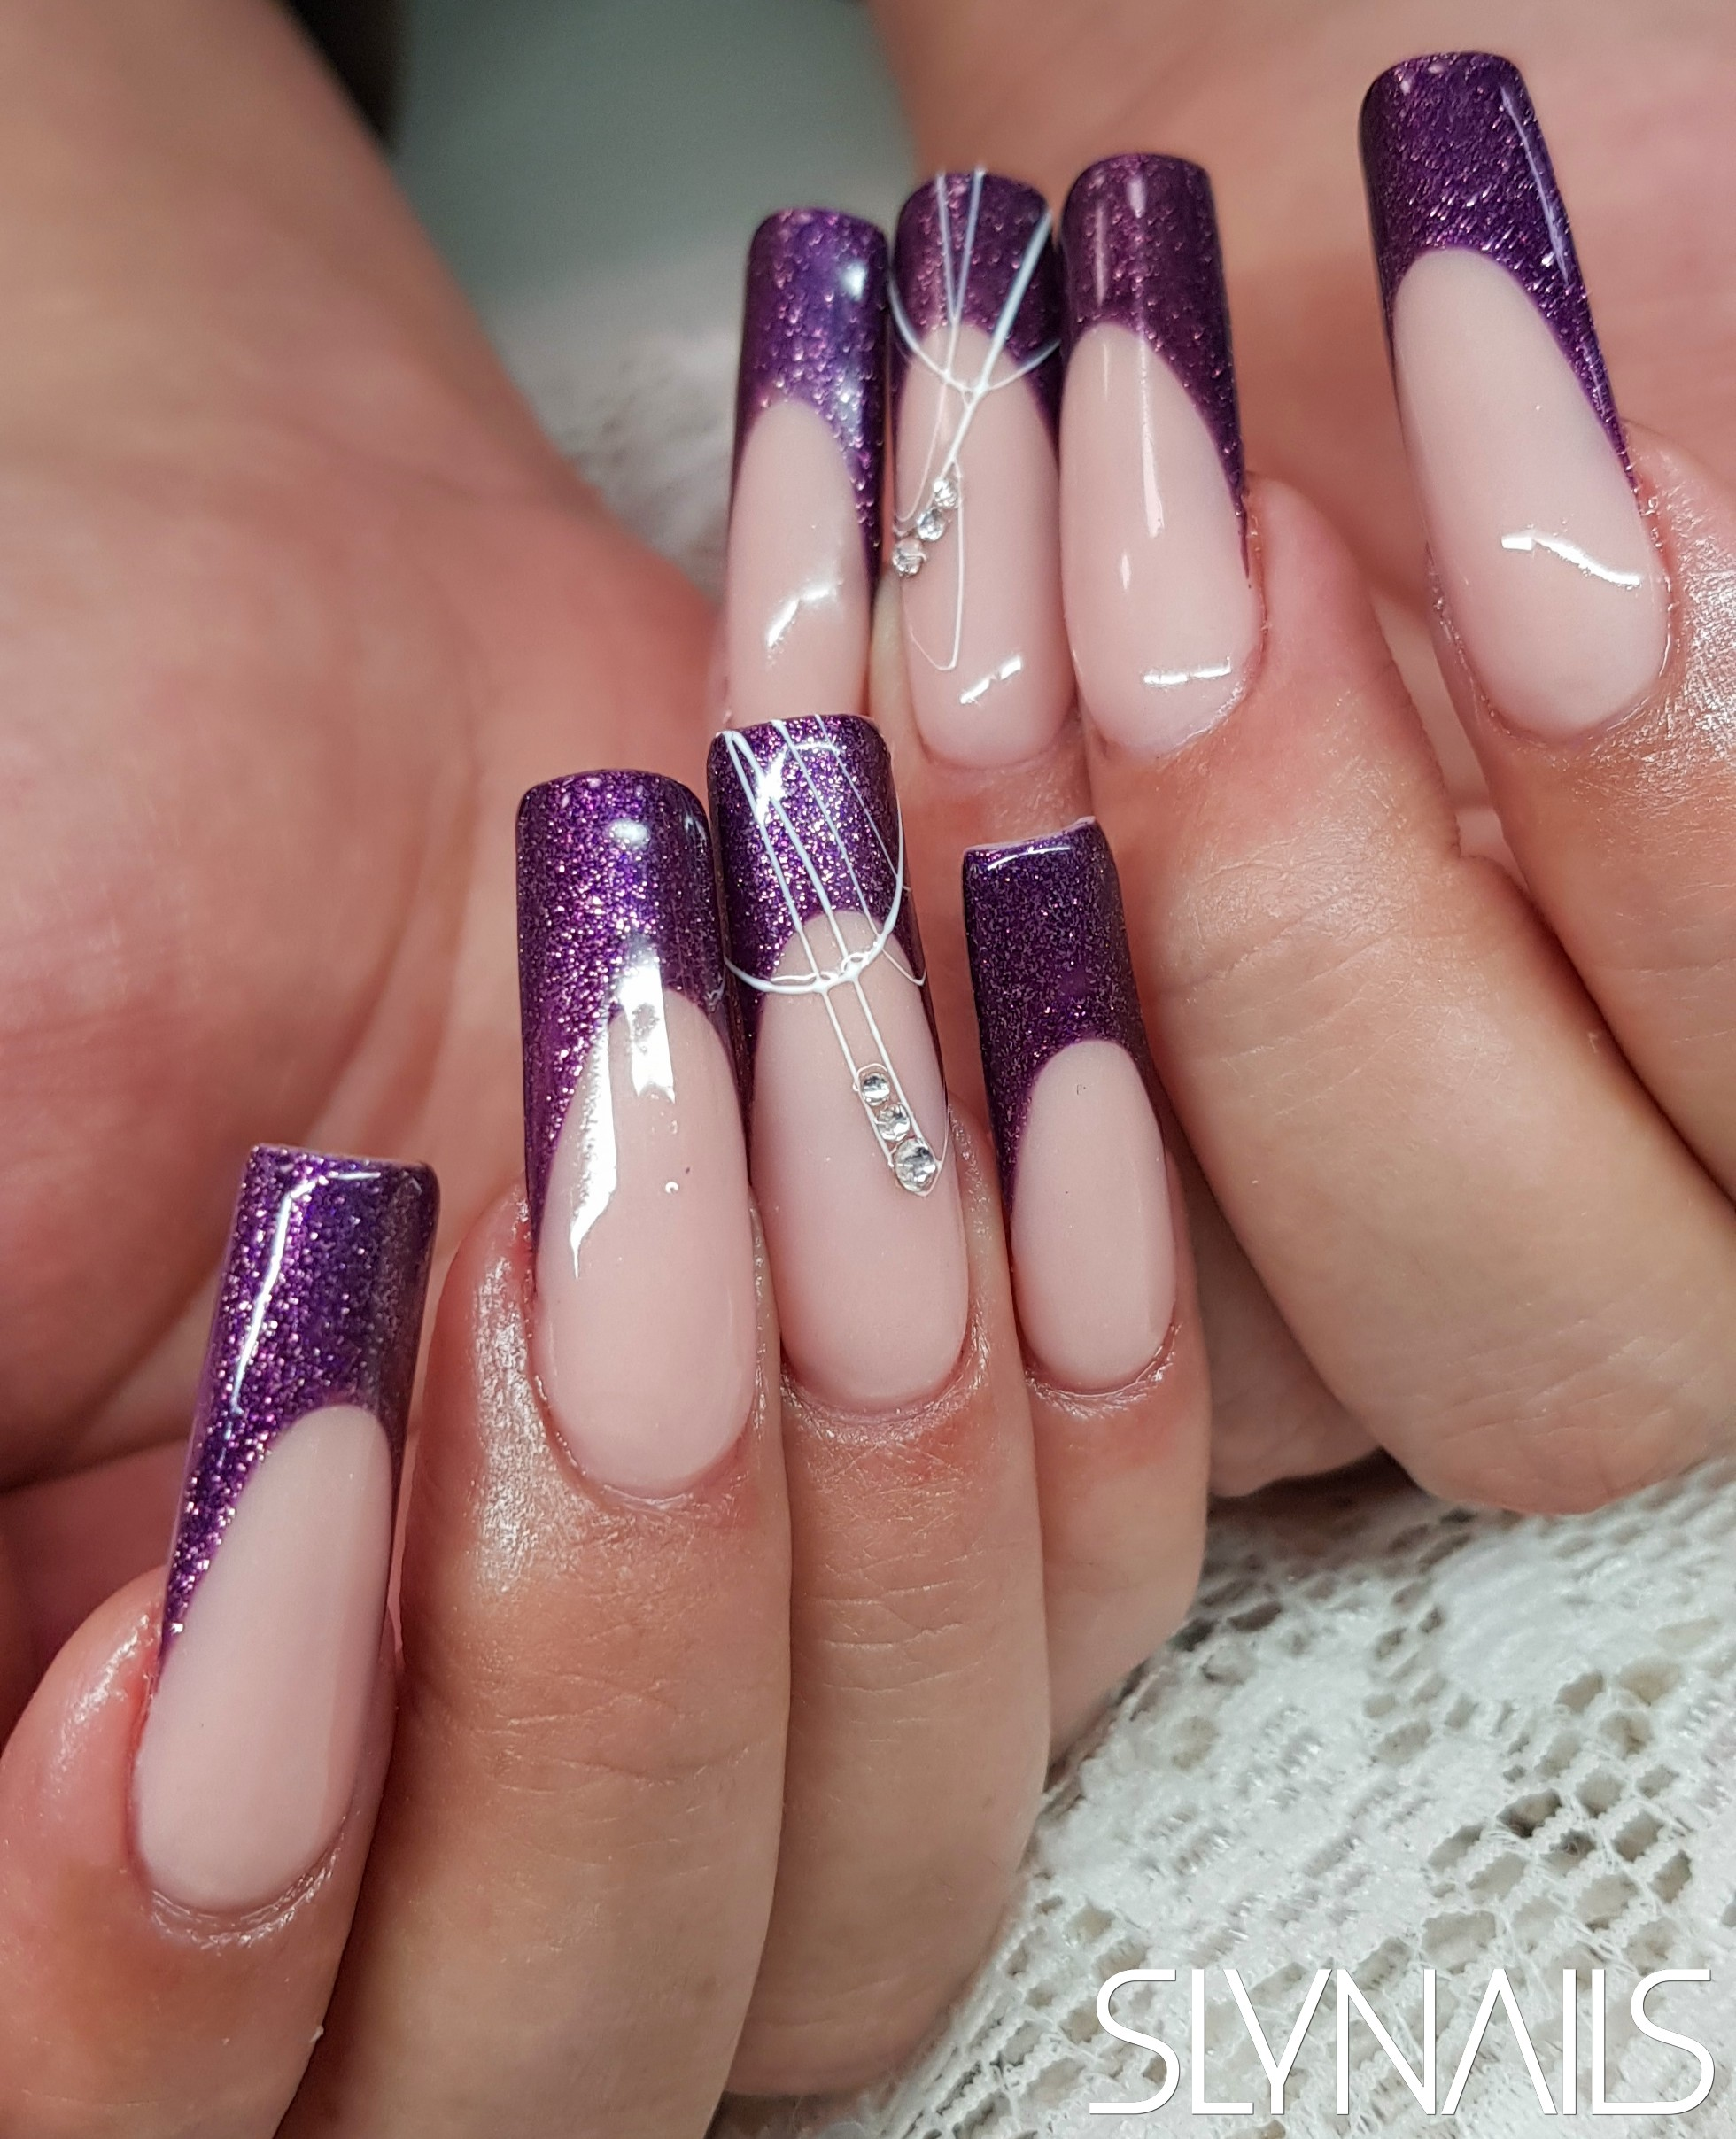 Nail extension, Longer nails, Square, Purple, French, Art gel decorations, Swarovski